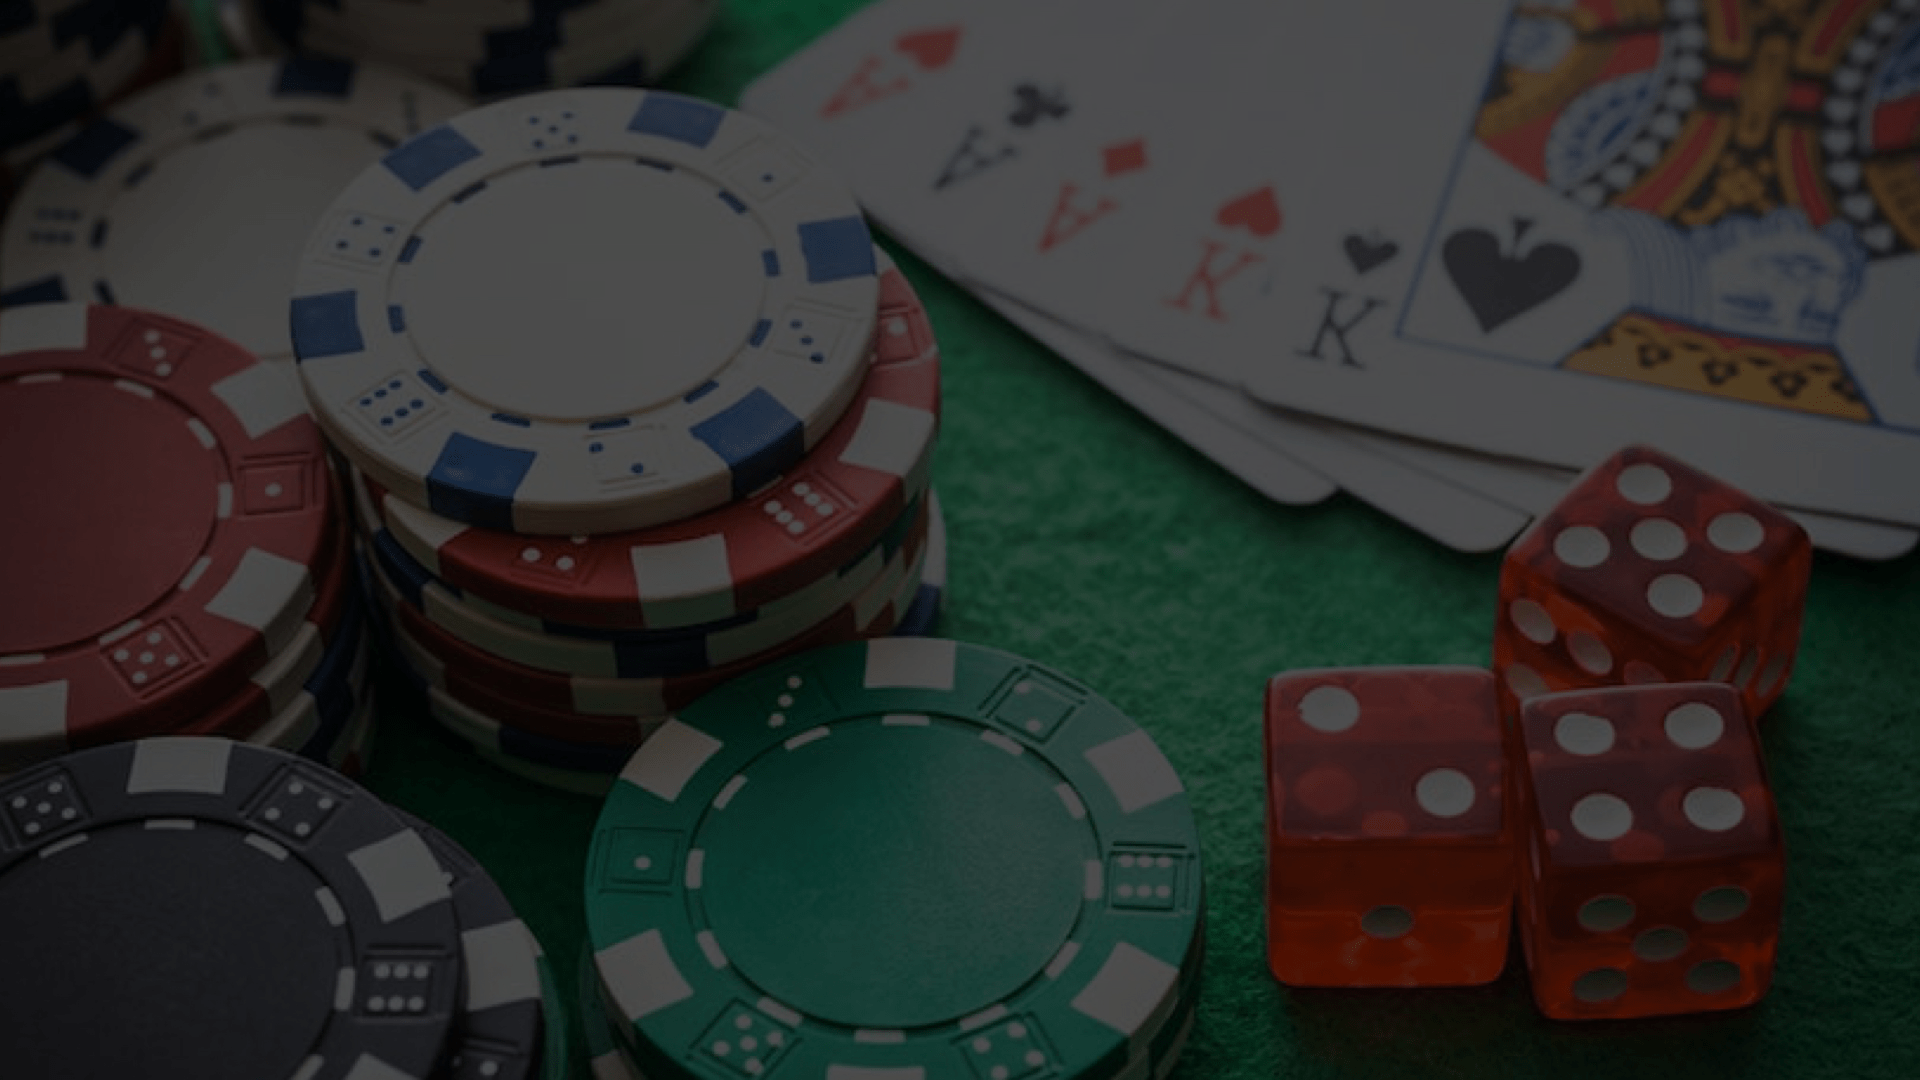 Gambling Impacts